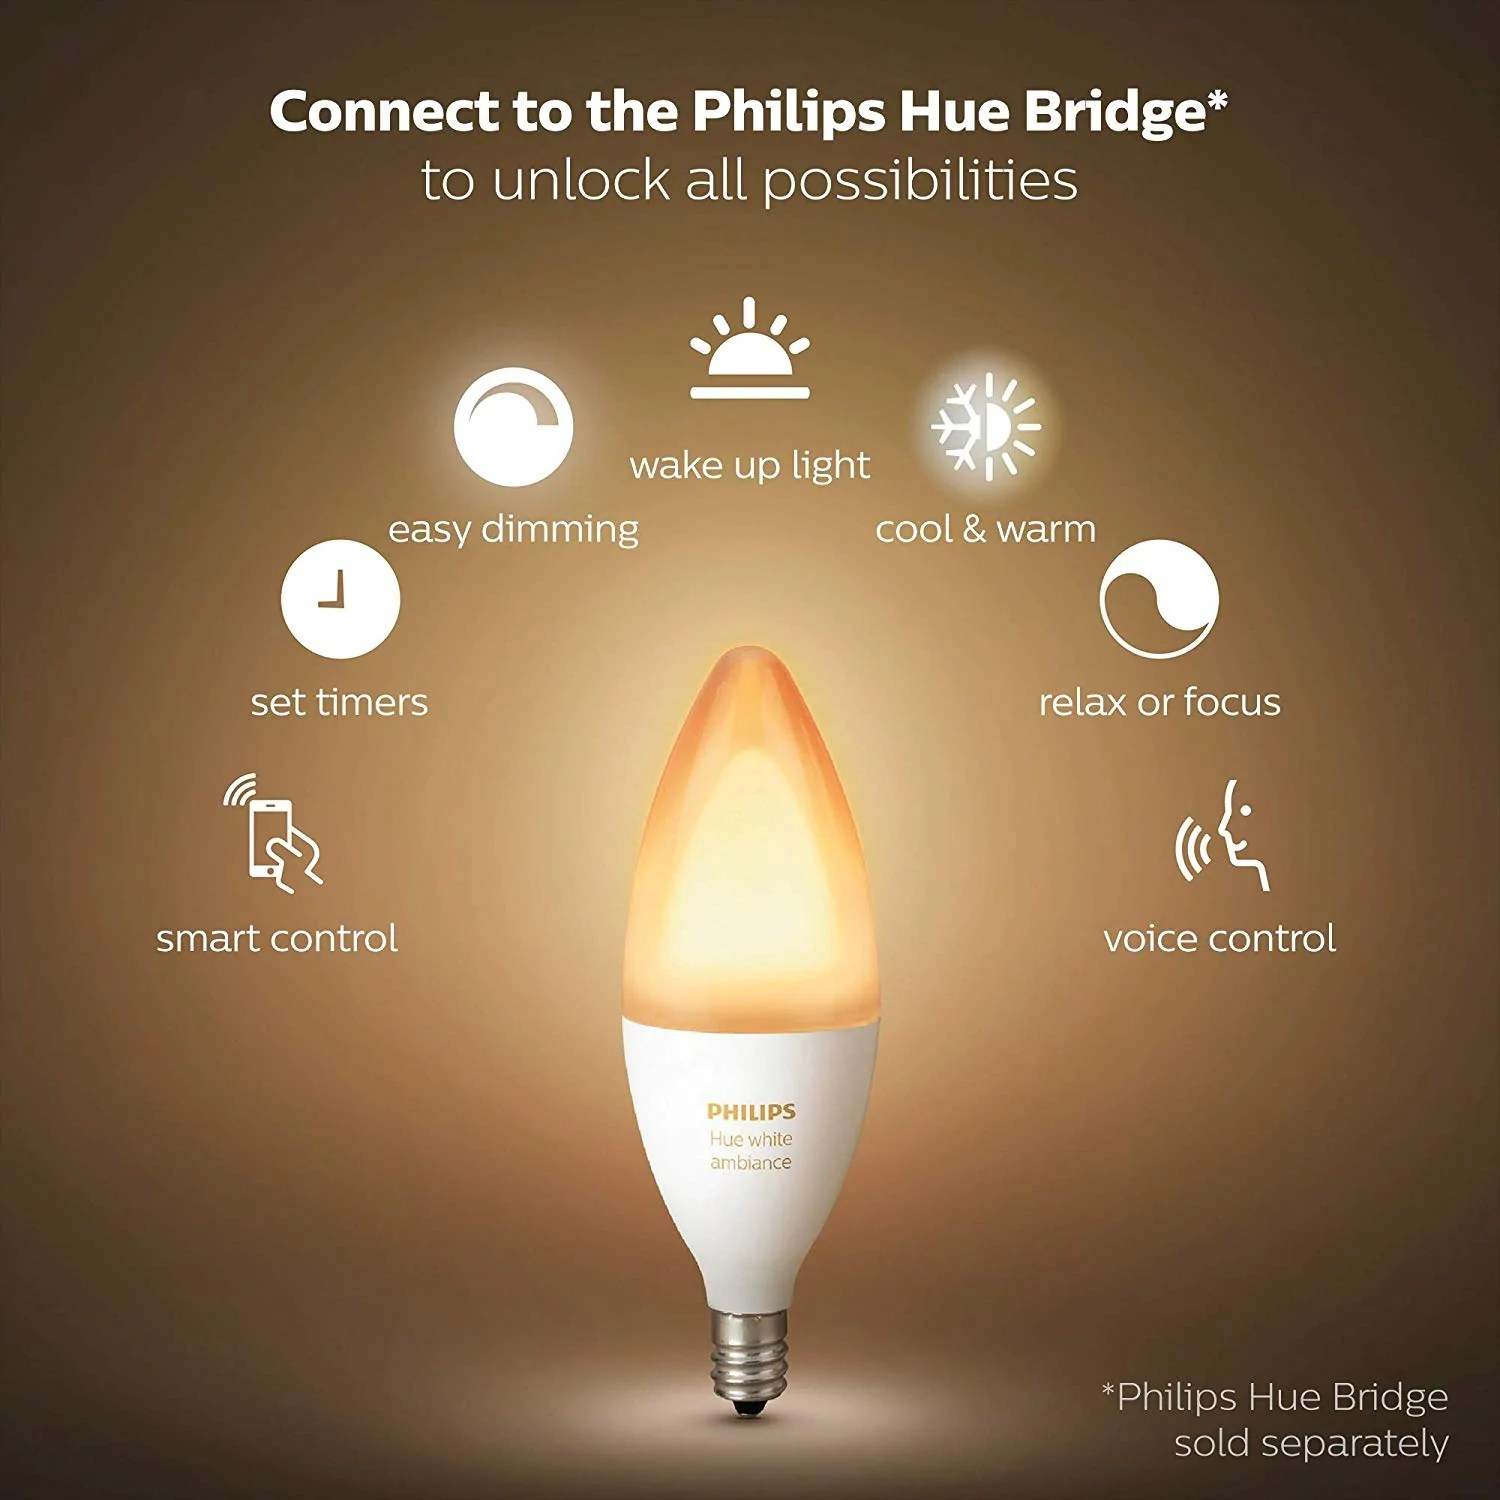 E14 Led Philips Philips Hue White Ambiance Wireless Lighting E14 Led Twin Pack